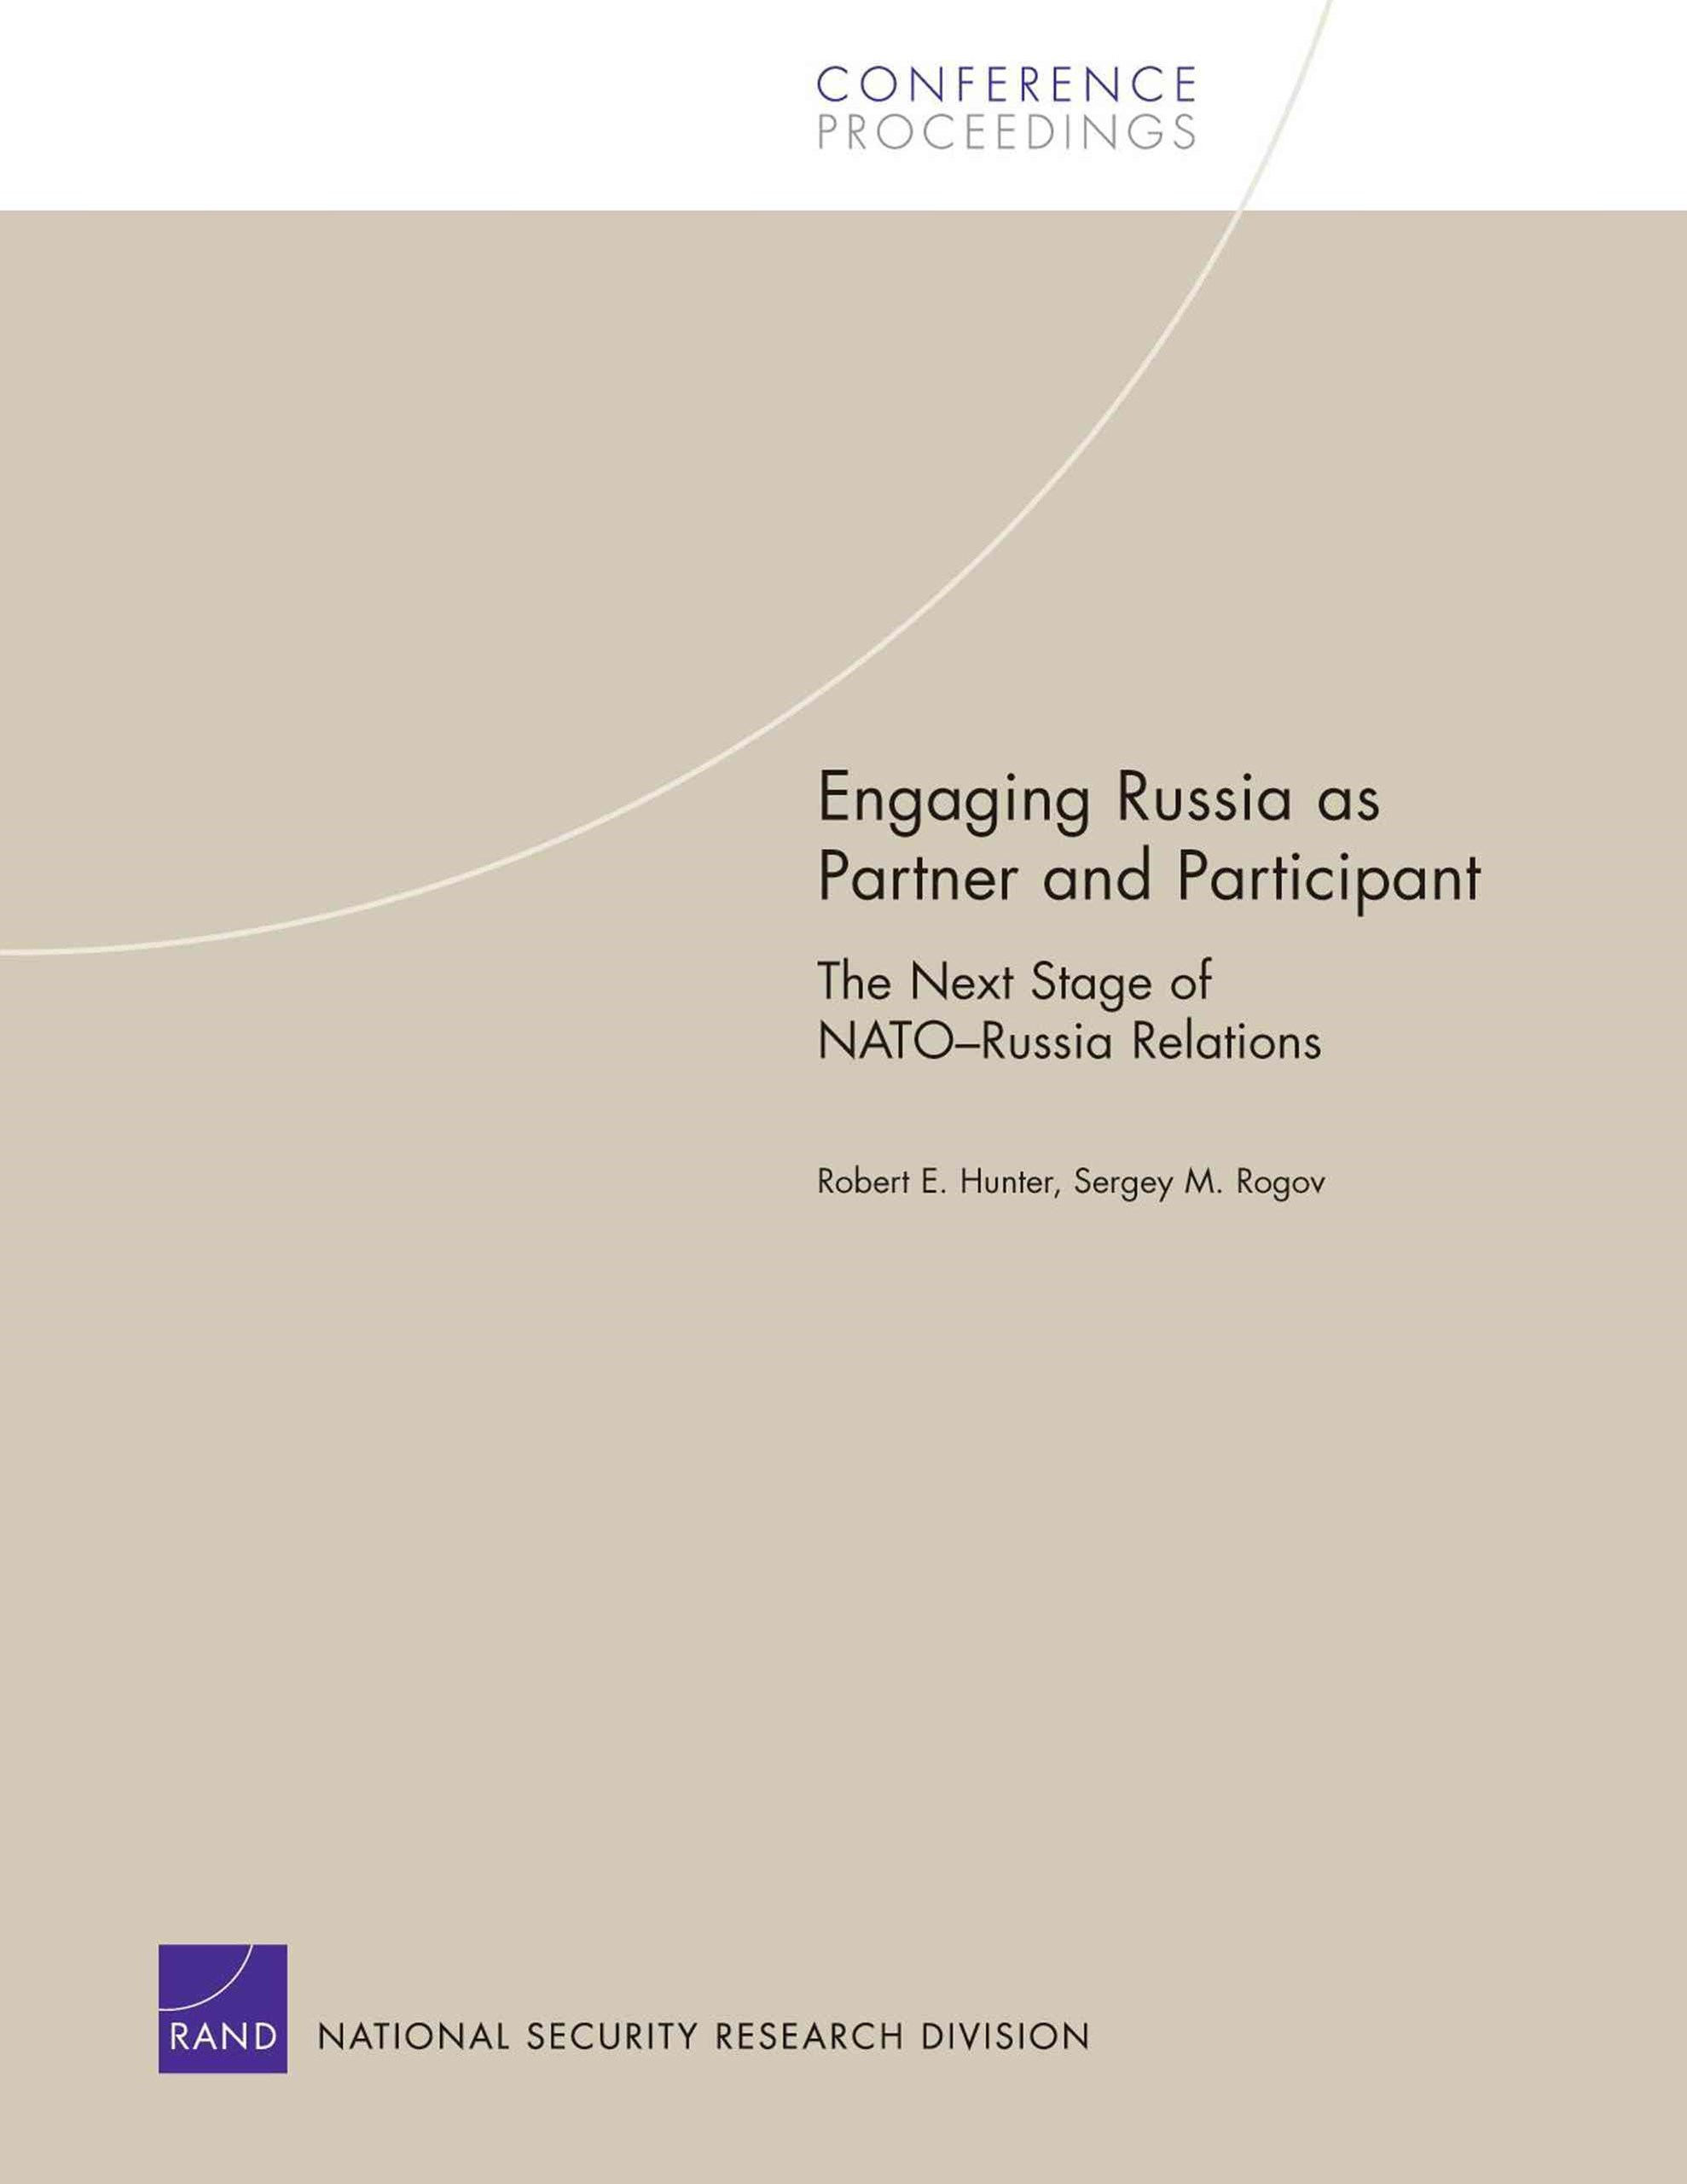 Engaging Russia As Partner and Participant